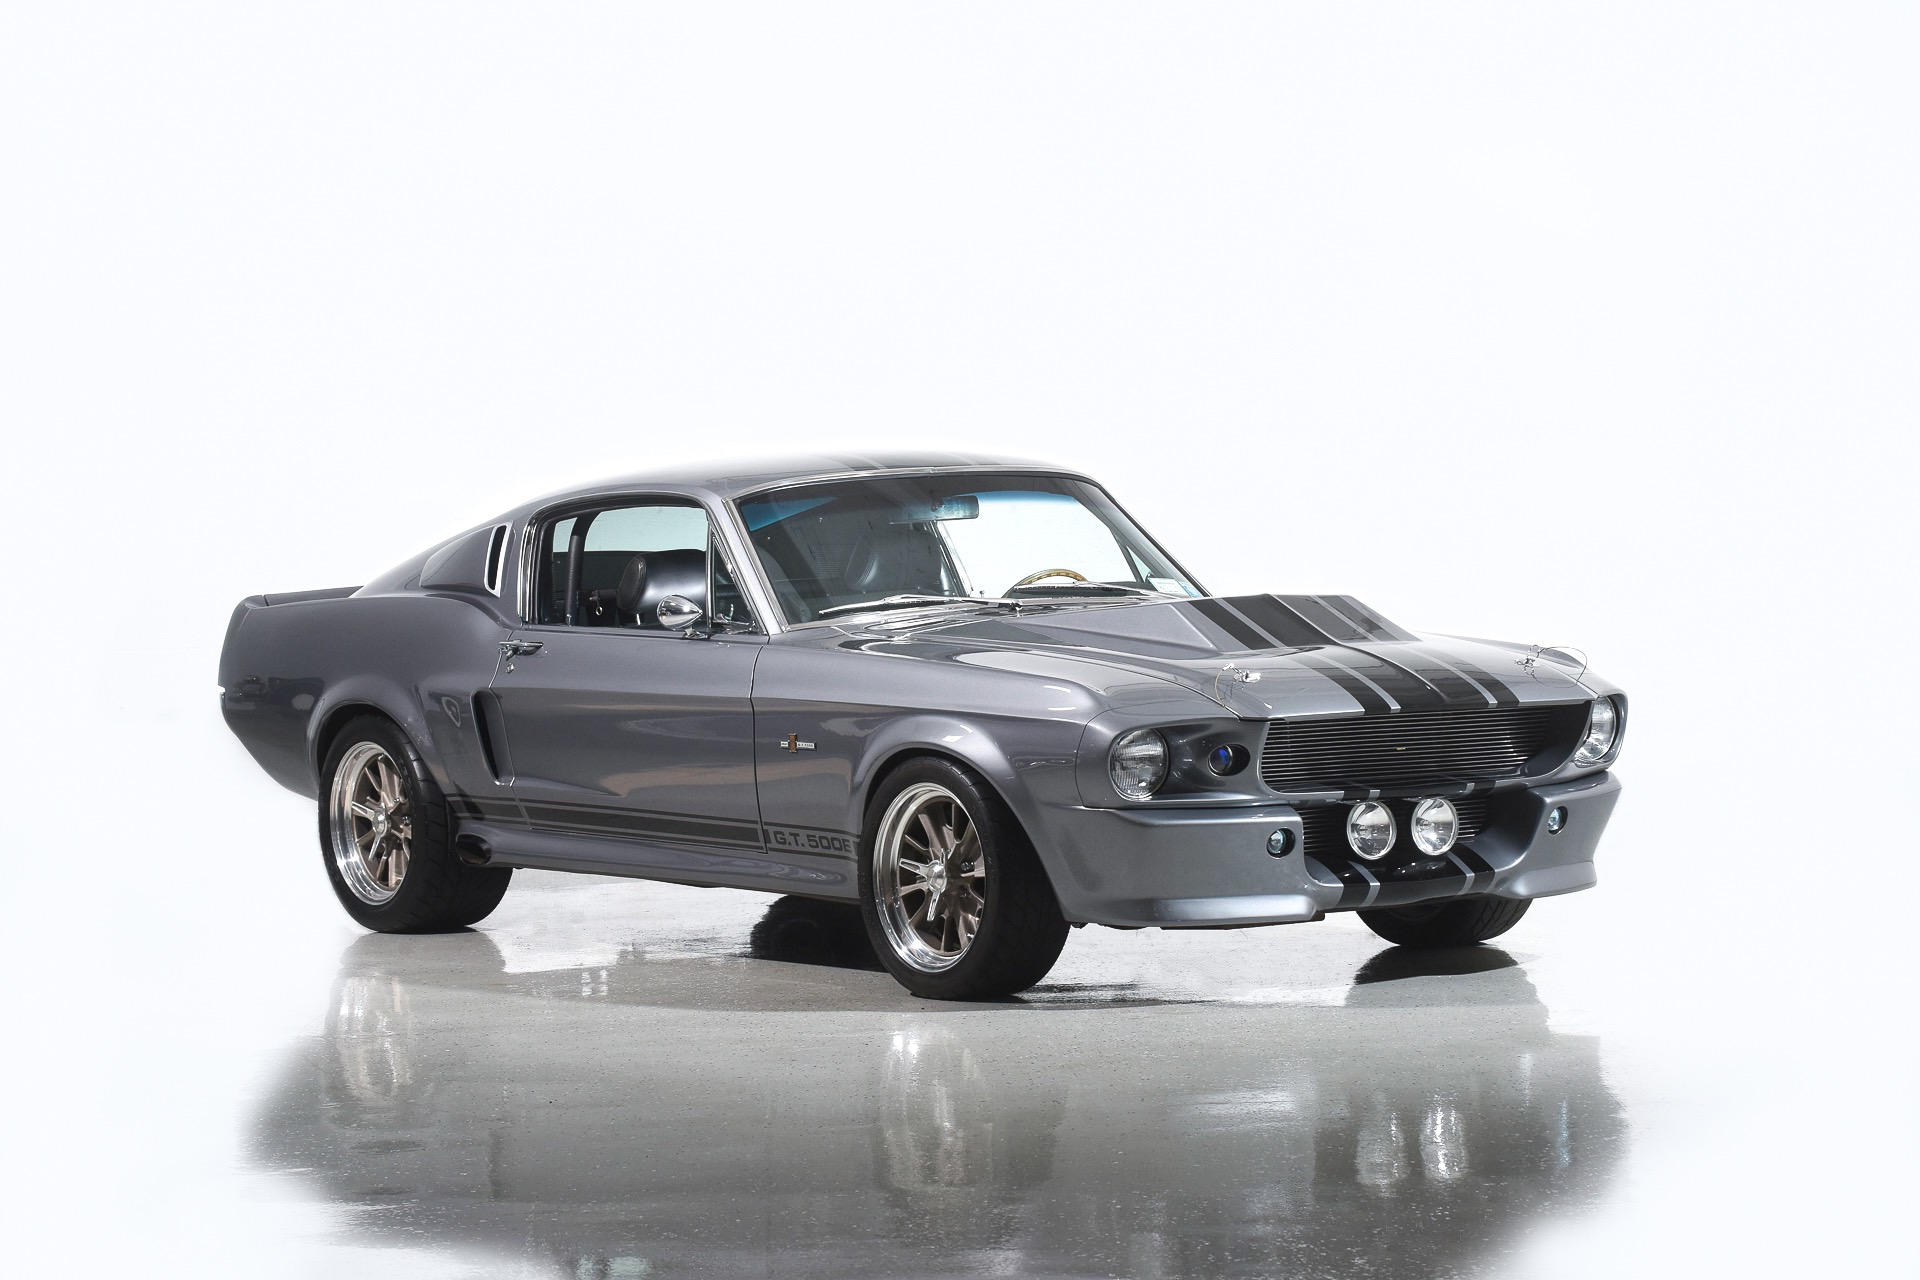 Ford Mustang Shelby Gt500 Eleanor Wallpaper Hd 1967 Ford Shelby Mustang Gt500e Super Snake Motorcar